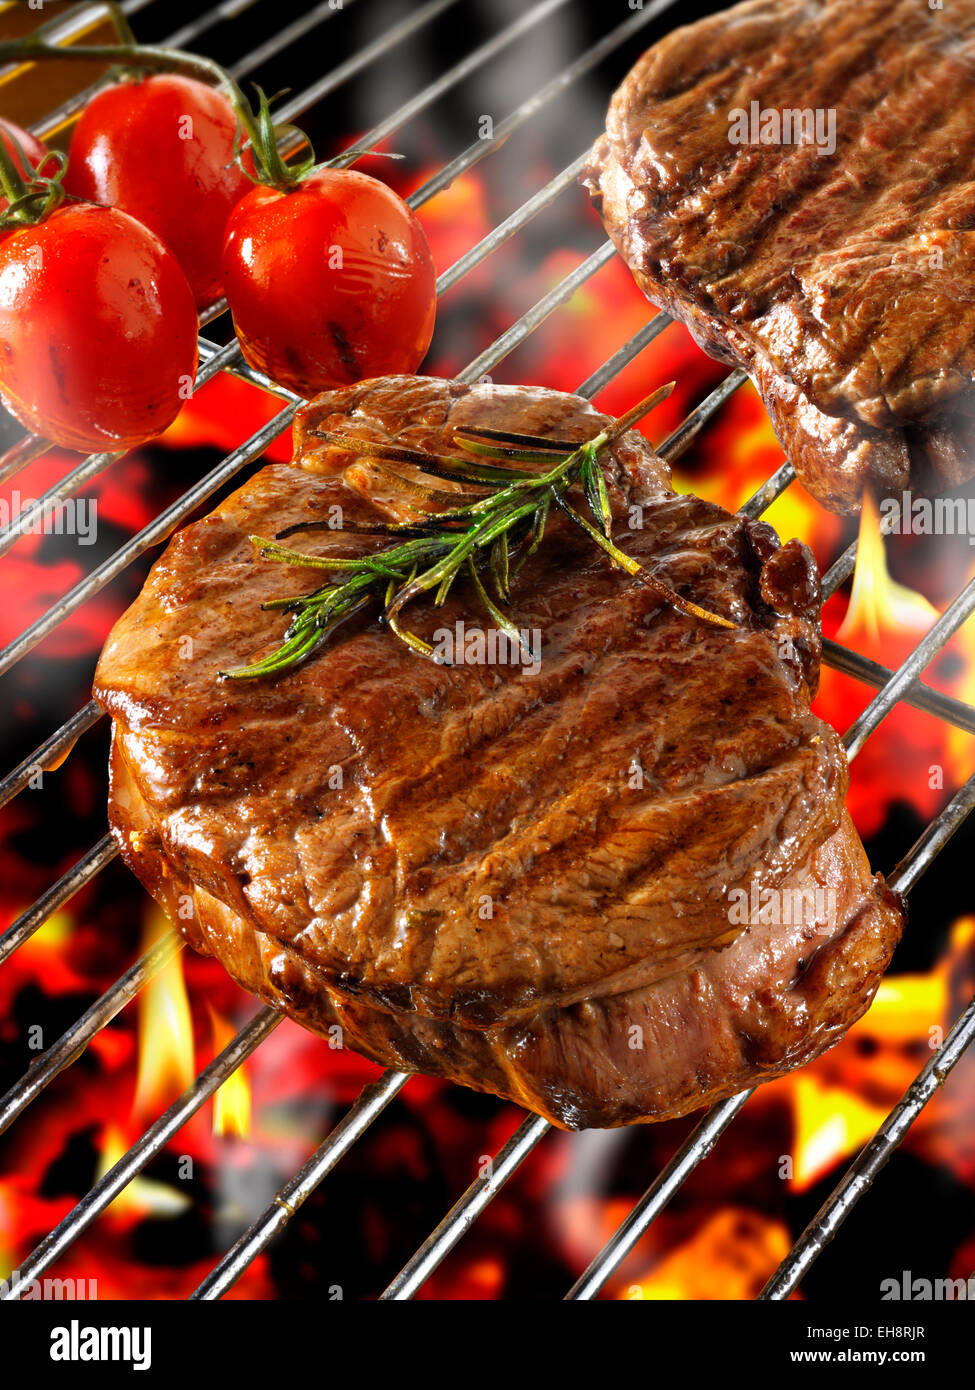 Barbecue steak cooking on a flame bbq grill - Stock Image